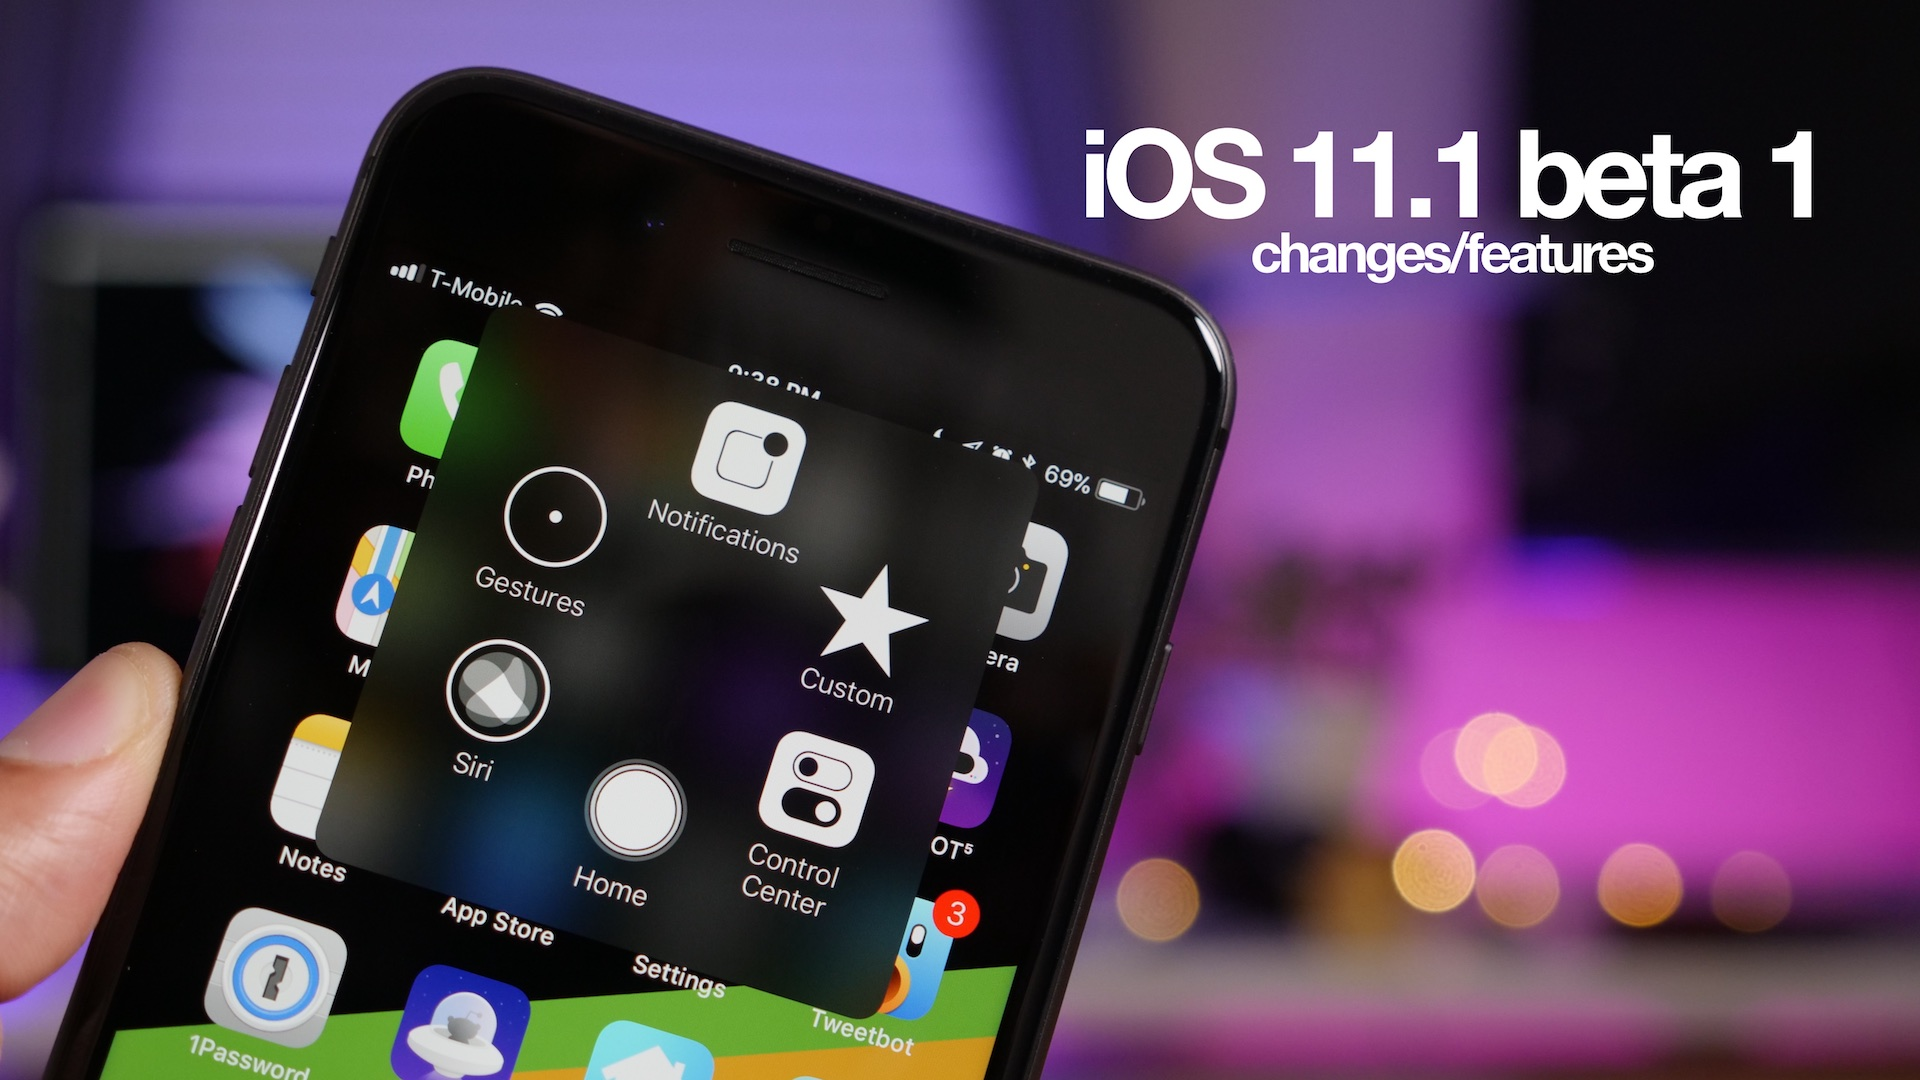 What's new in iOS 11.1 beta 1? Hands-on with new features and changes [Video]